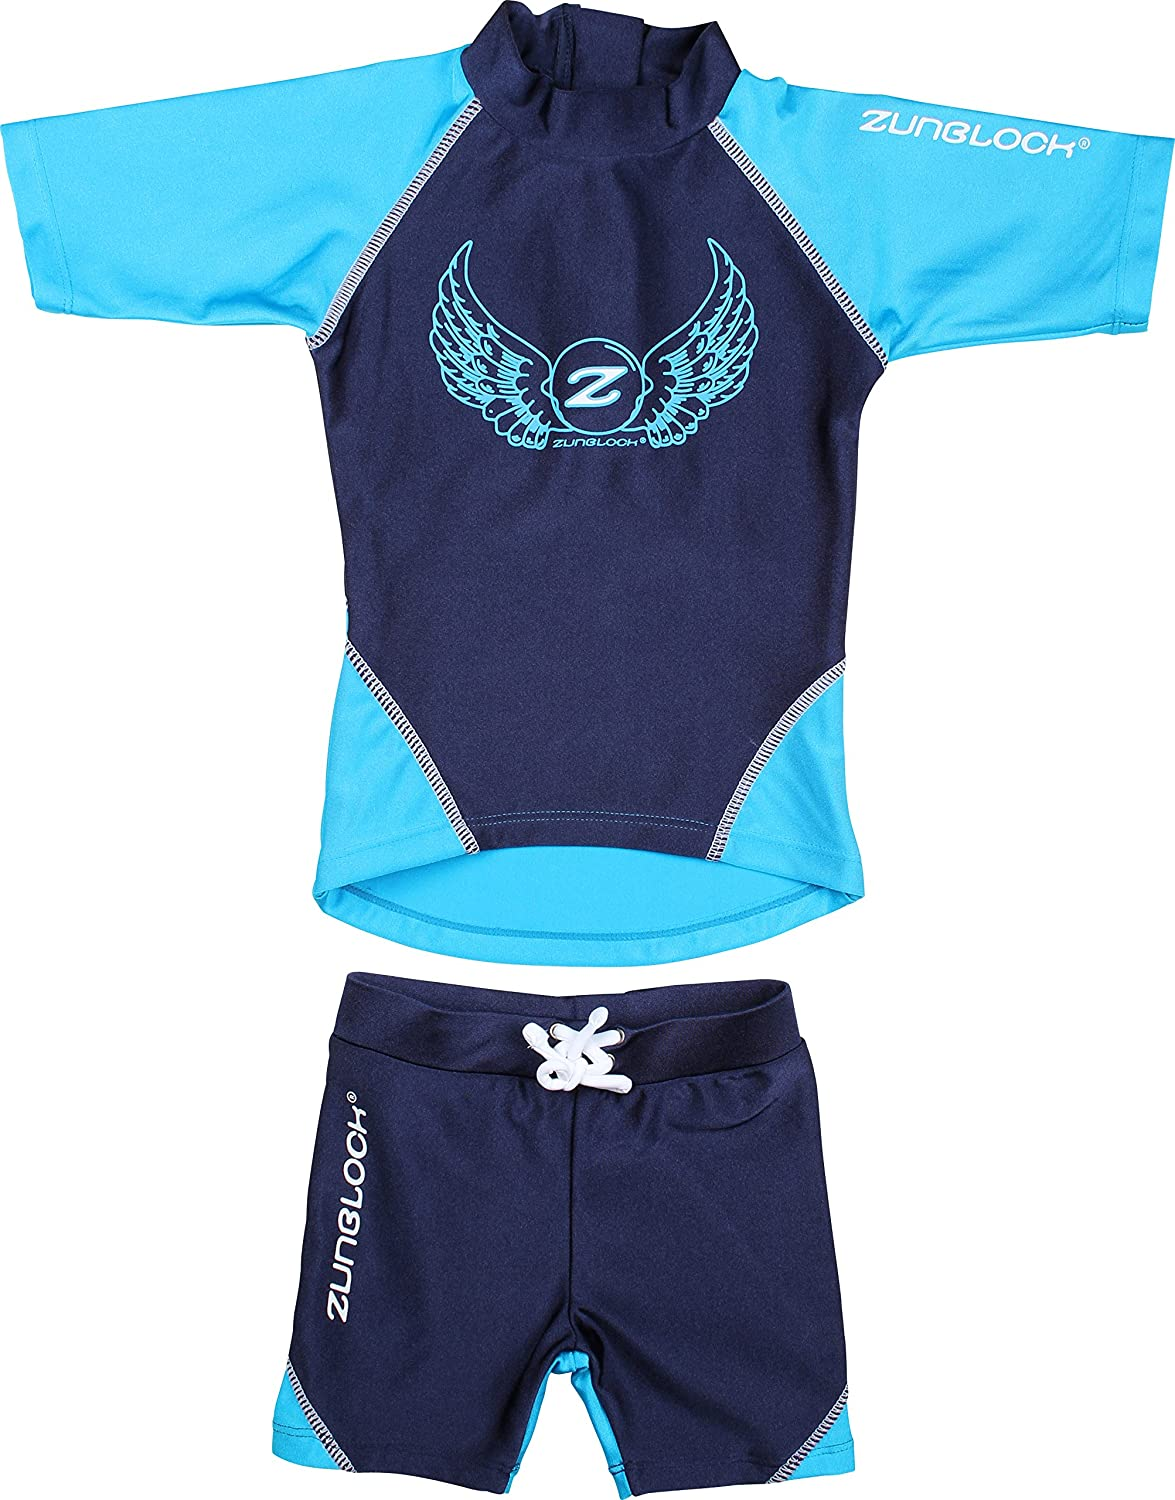 Zunblock UV-Set with Short Sleeves, Rocky Navy/Turquoise, 122/128cm 2370057